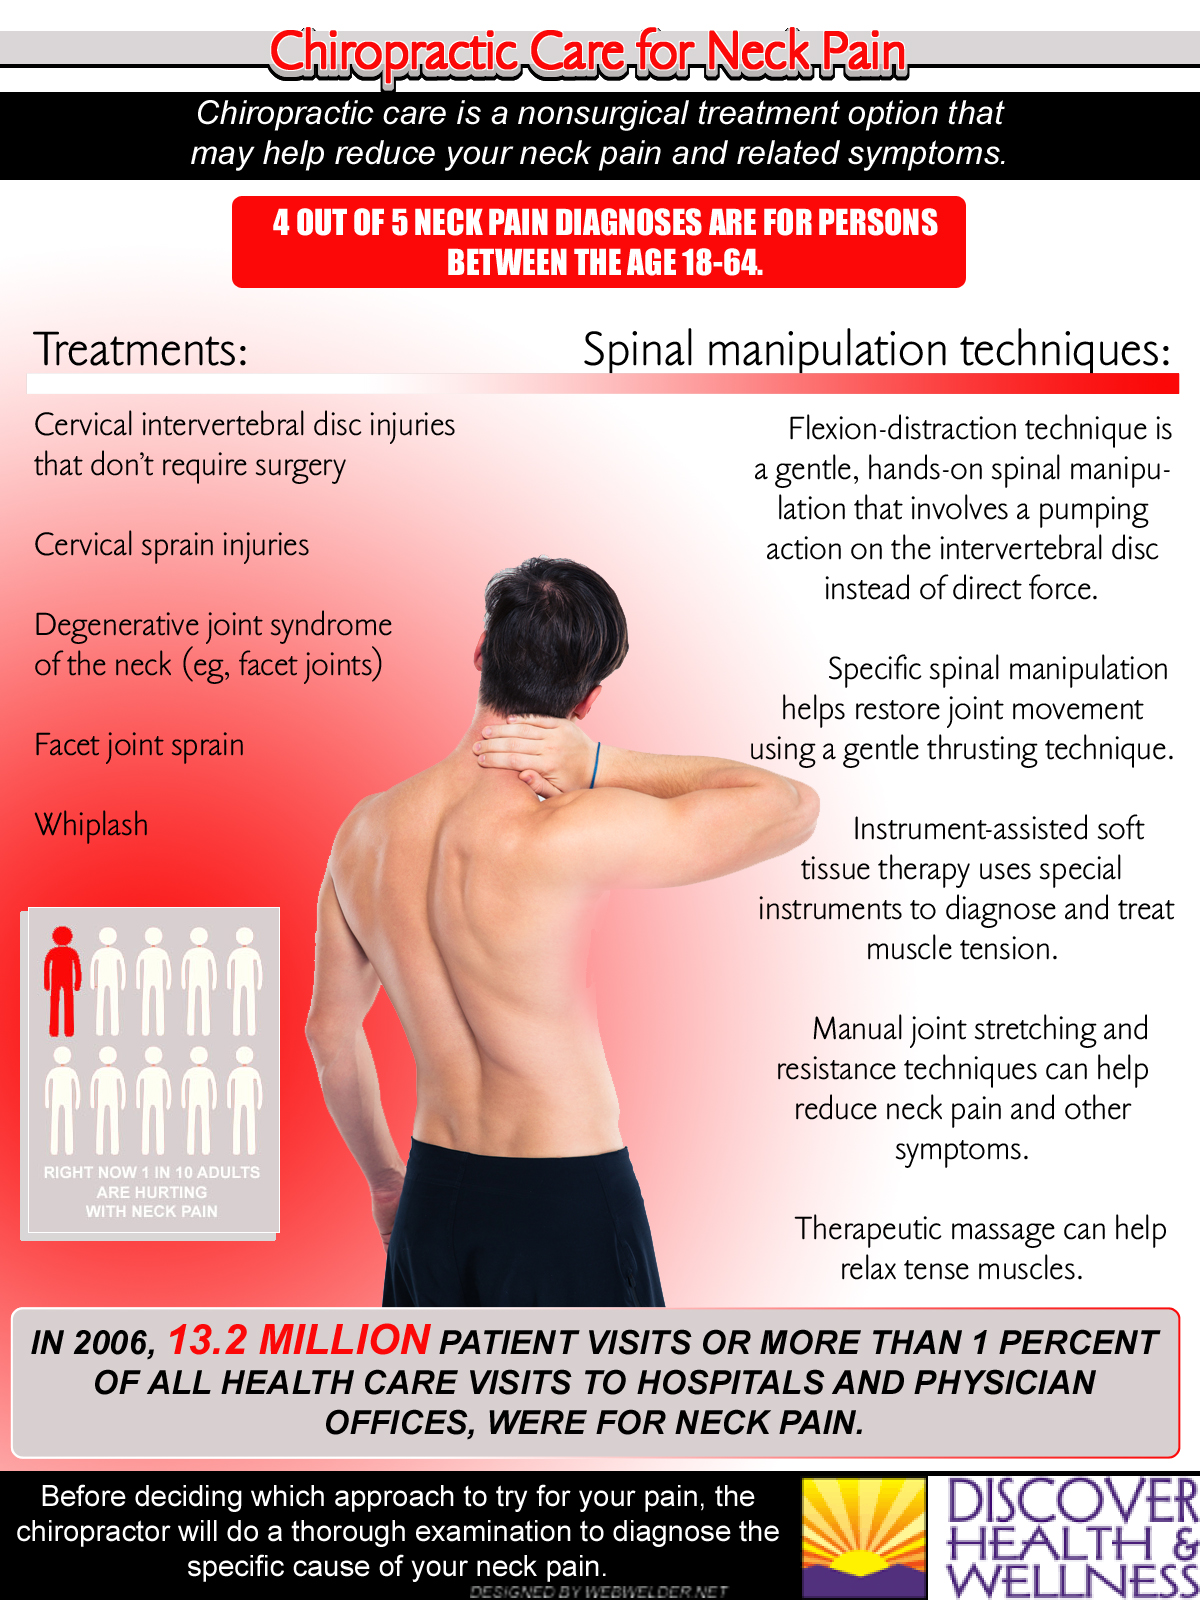 chiropractic care for neck pain - discover health and wellness